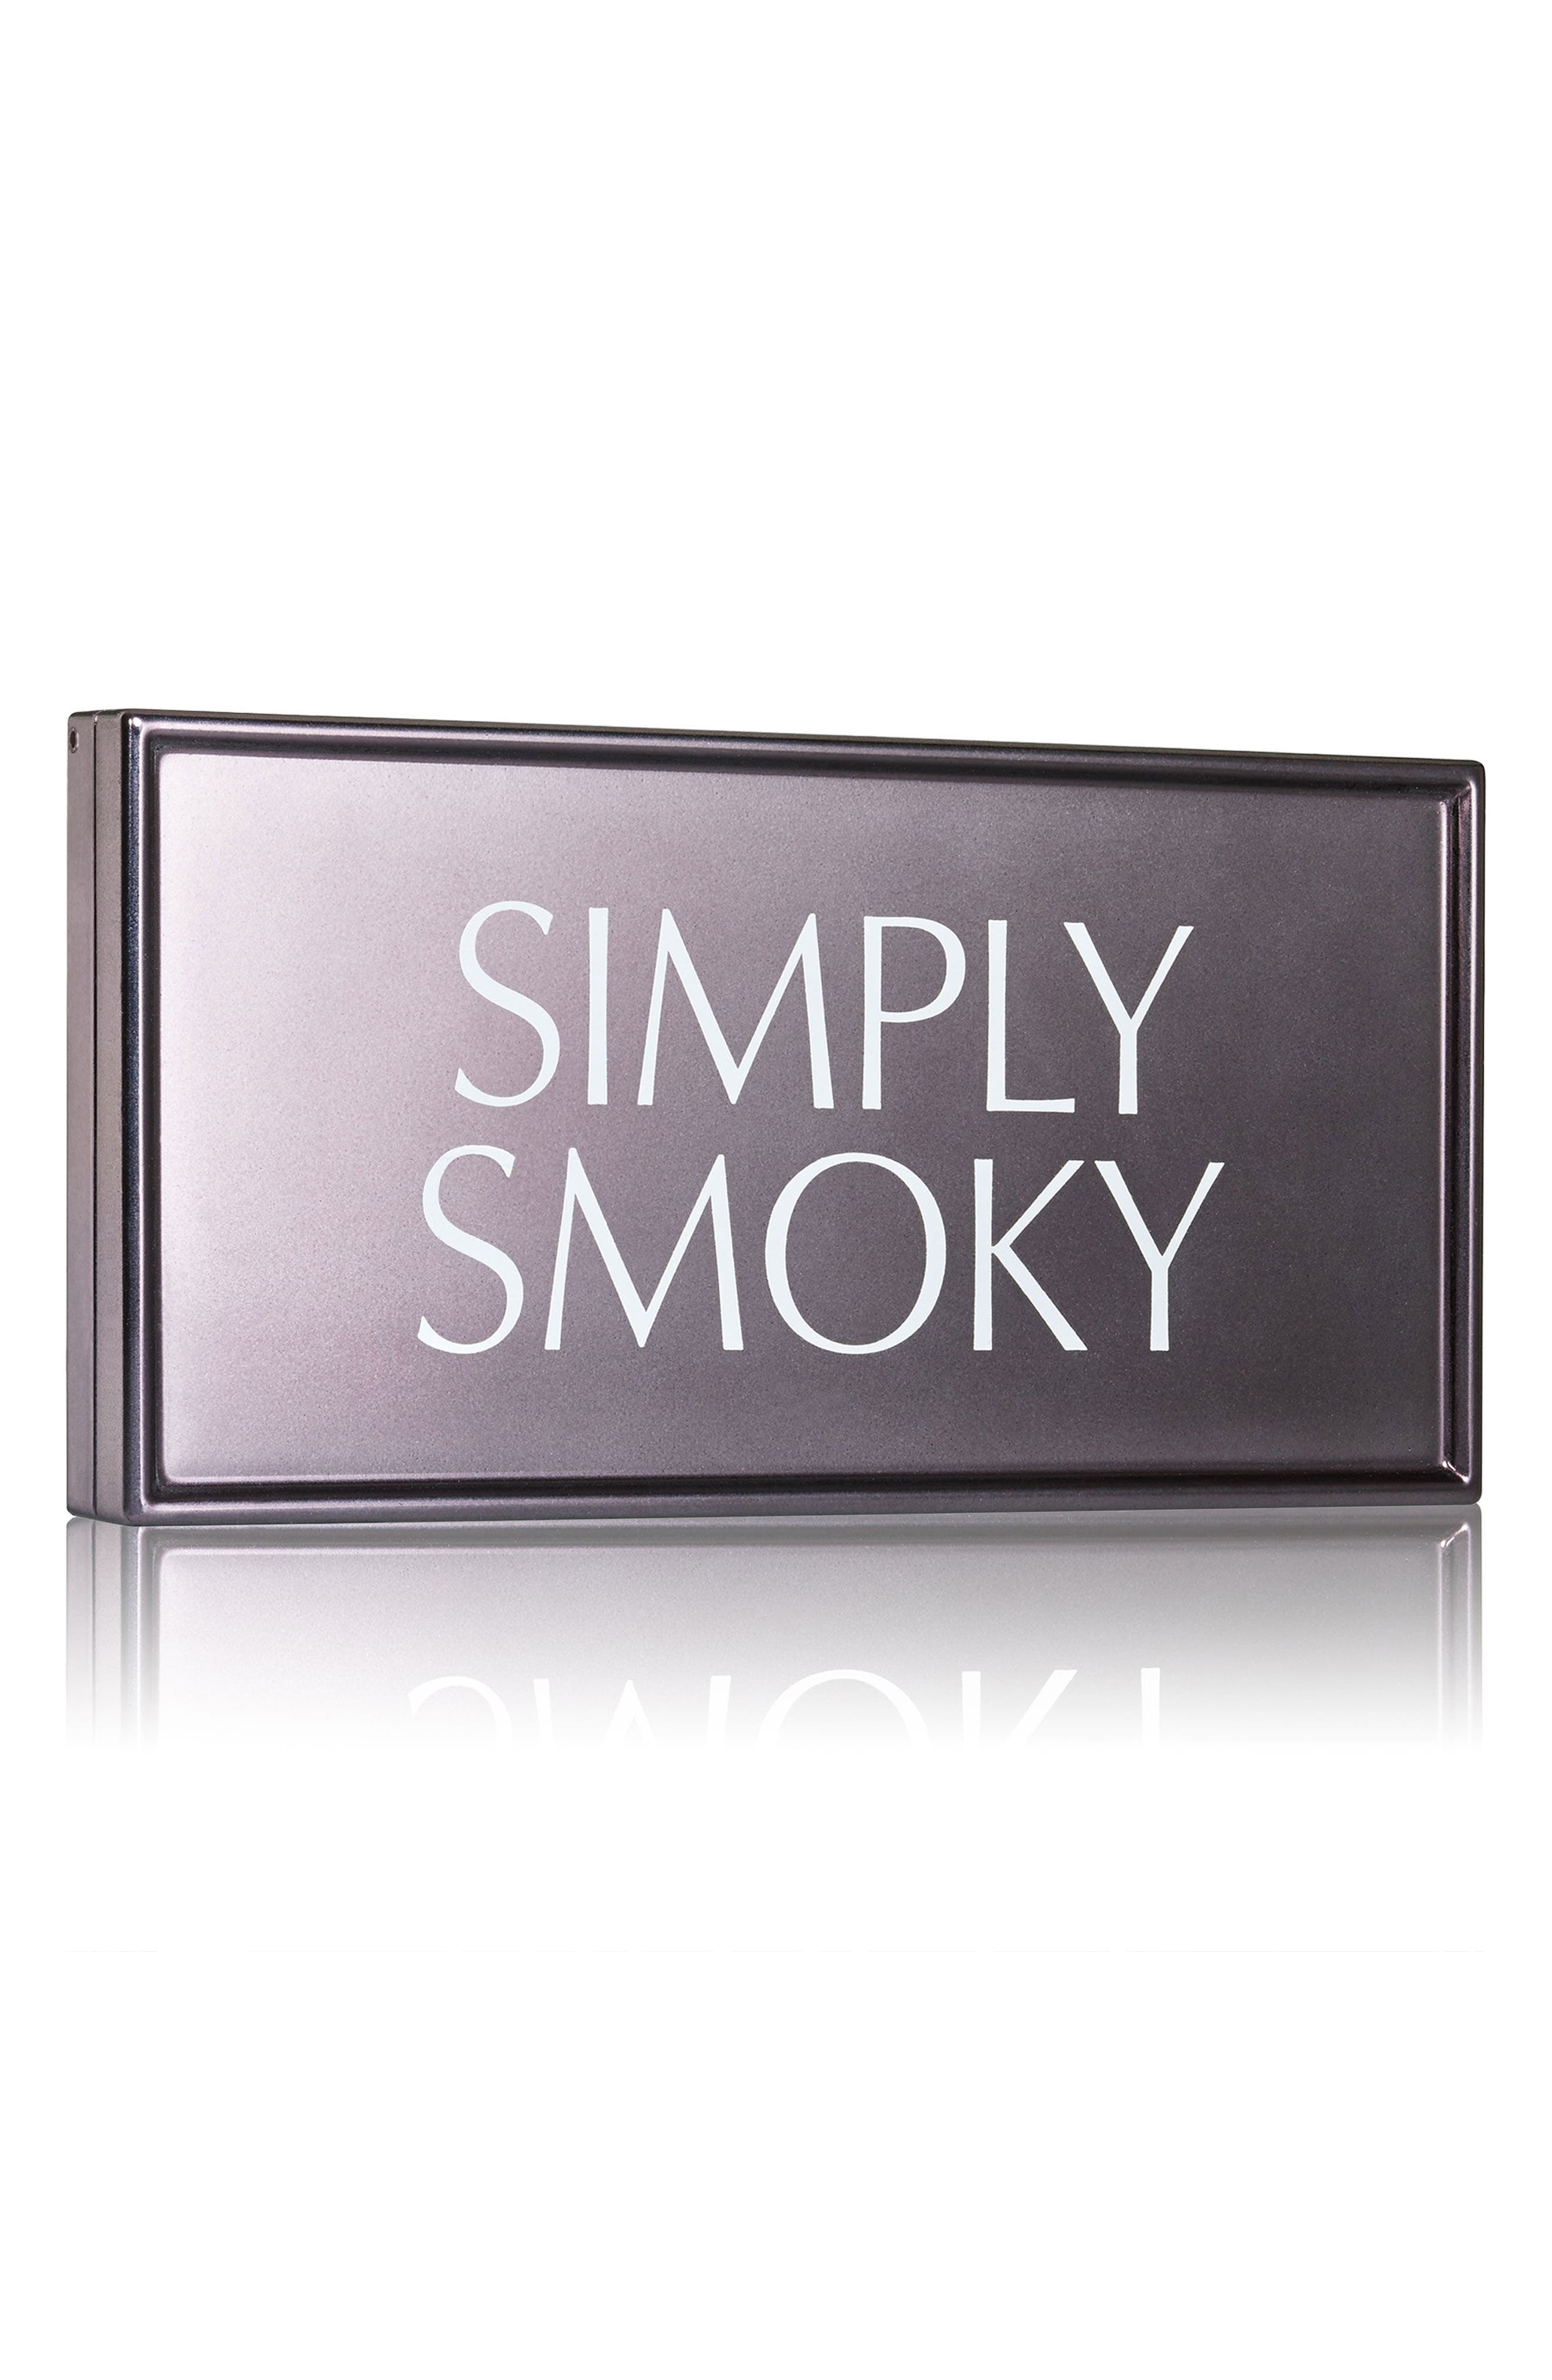 Simply Smoky Eyeshadow Palette,                             Alternate thumbnail 3, color,                             No Color